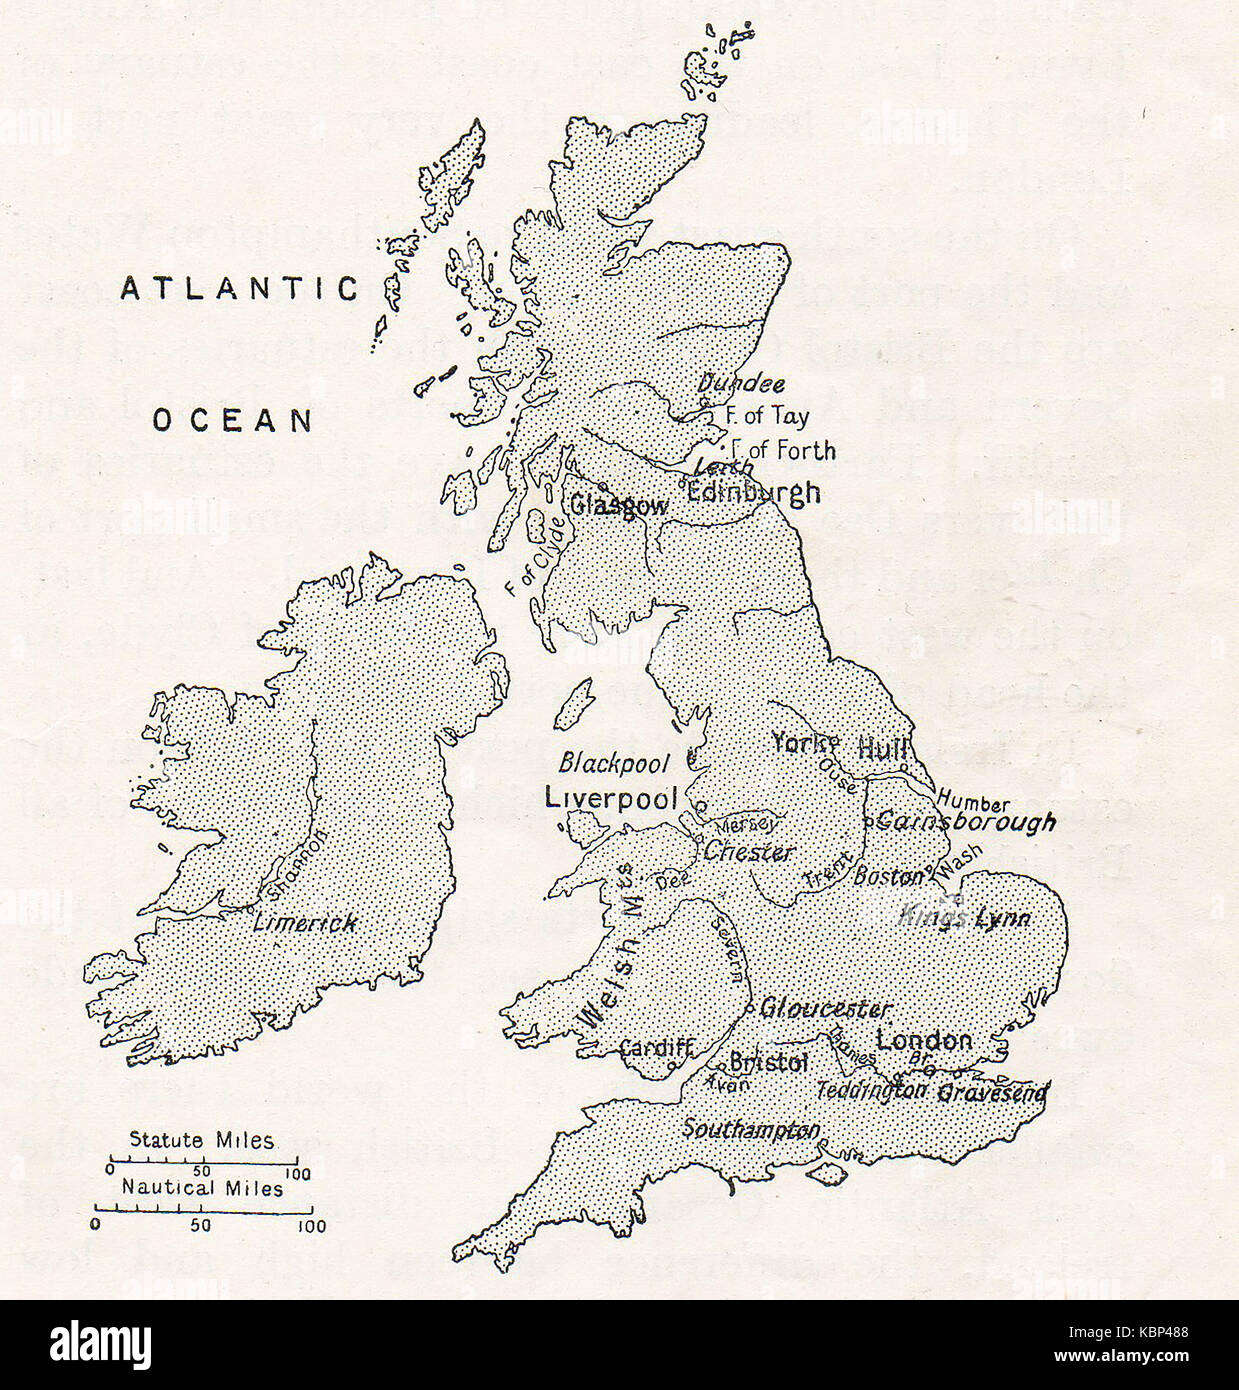 A 1914 map showing Britain's major tidal rivers (distances in statute and nautical miles) - Stock Image